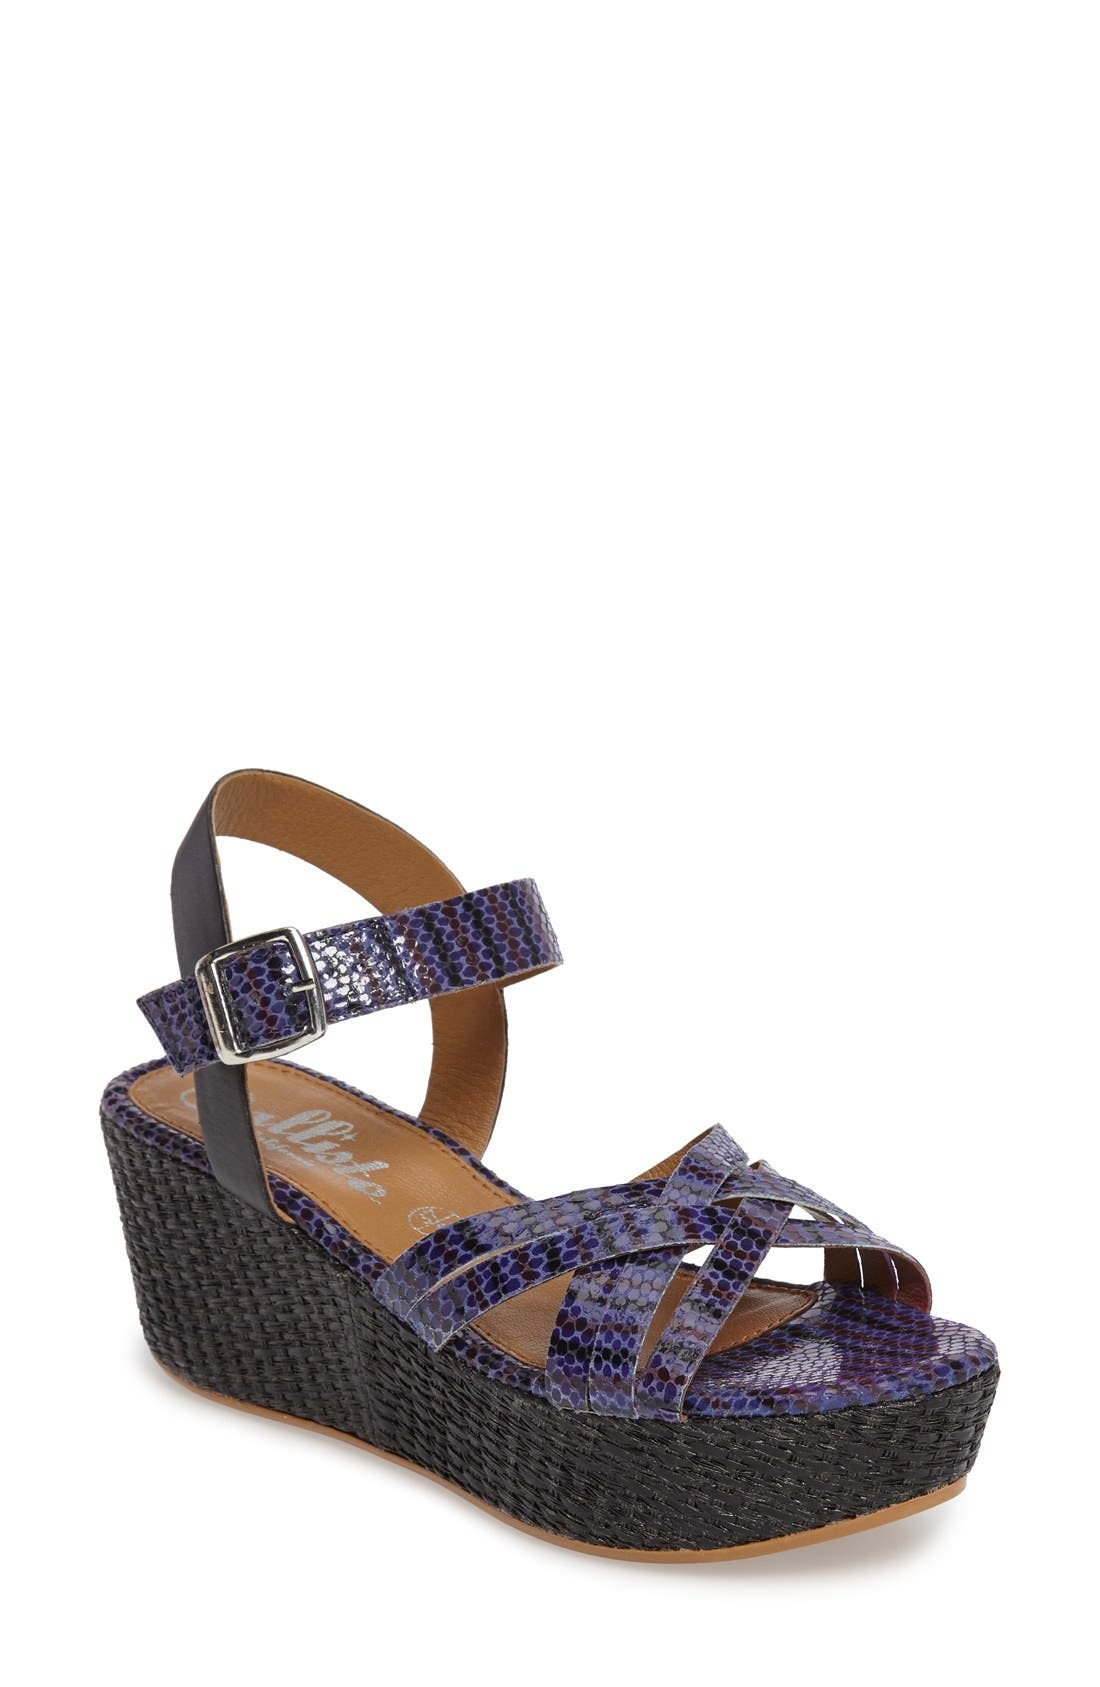 Valencia Platform Wedge Sandal,                             Main thumbnail 1, color,                             Blue Faux Leather